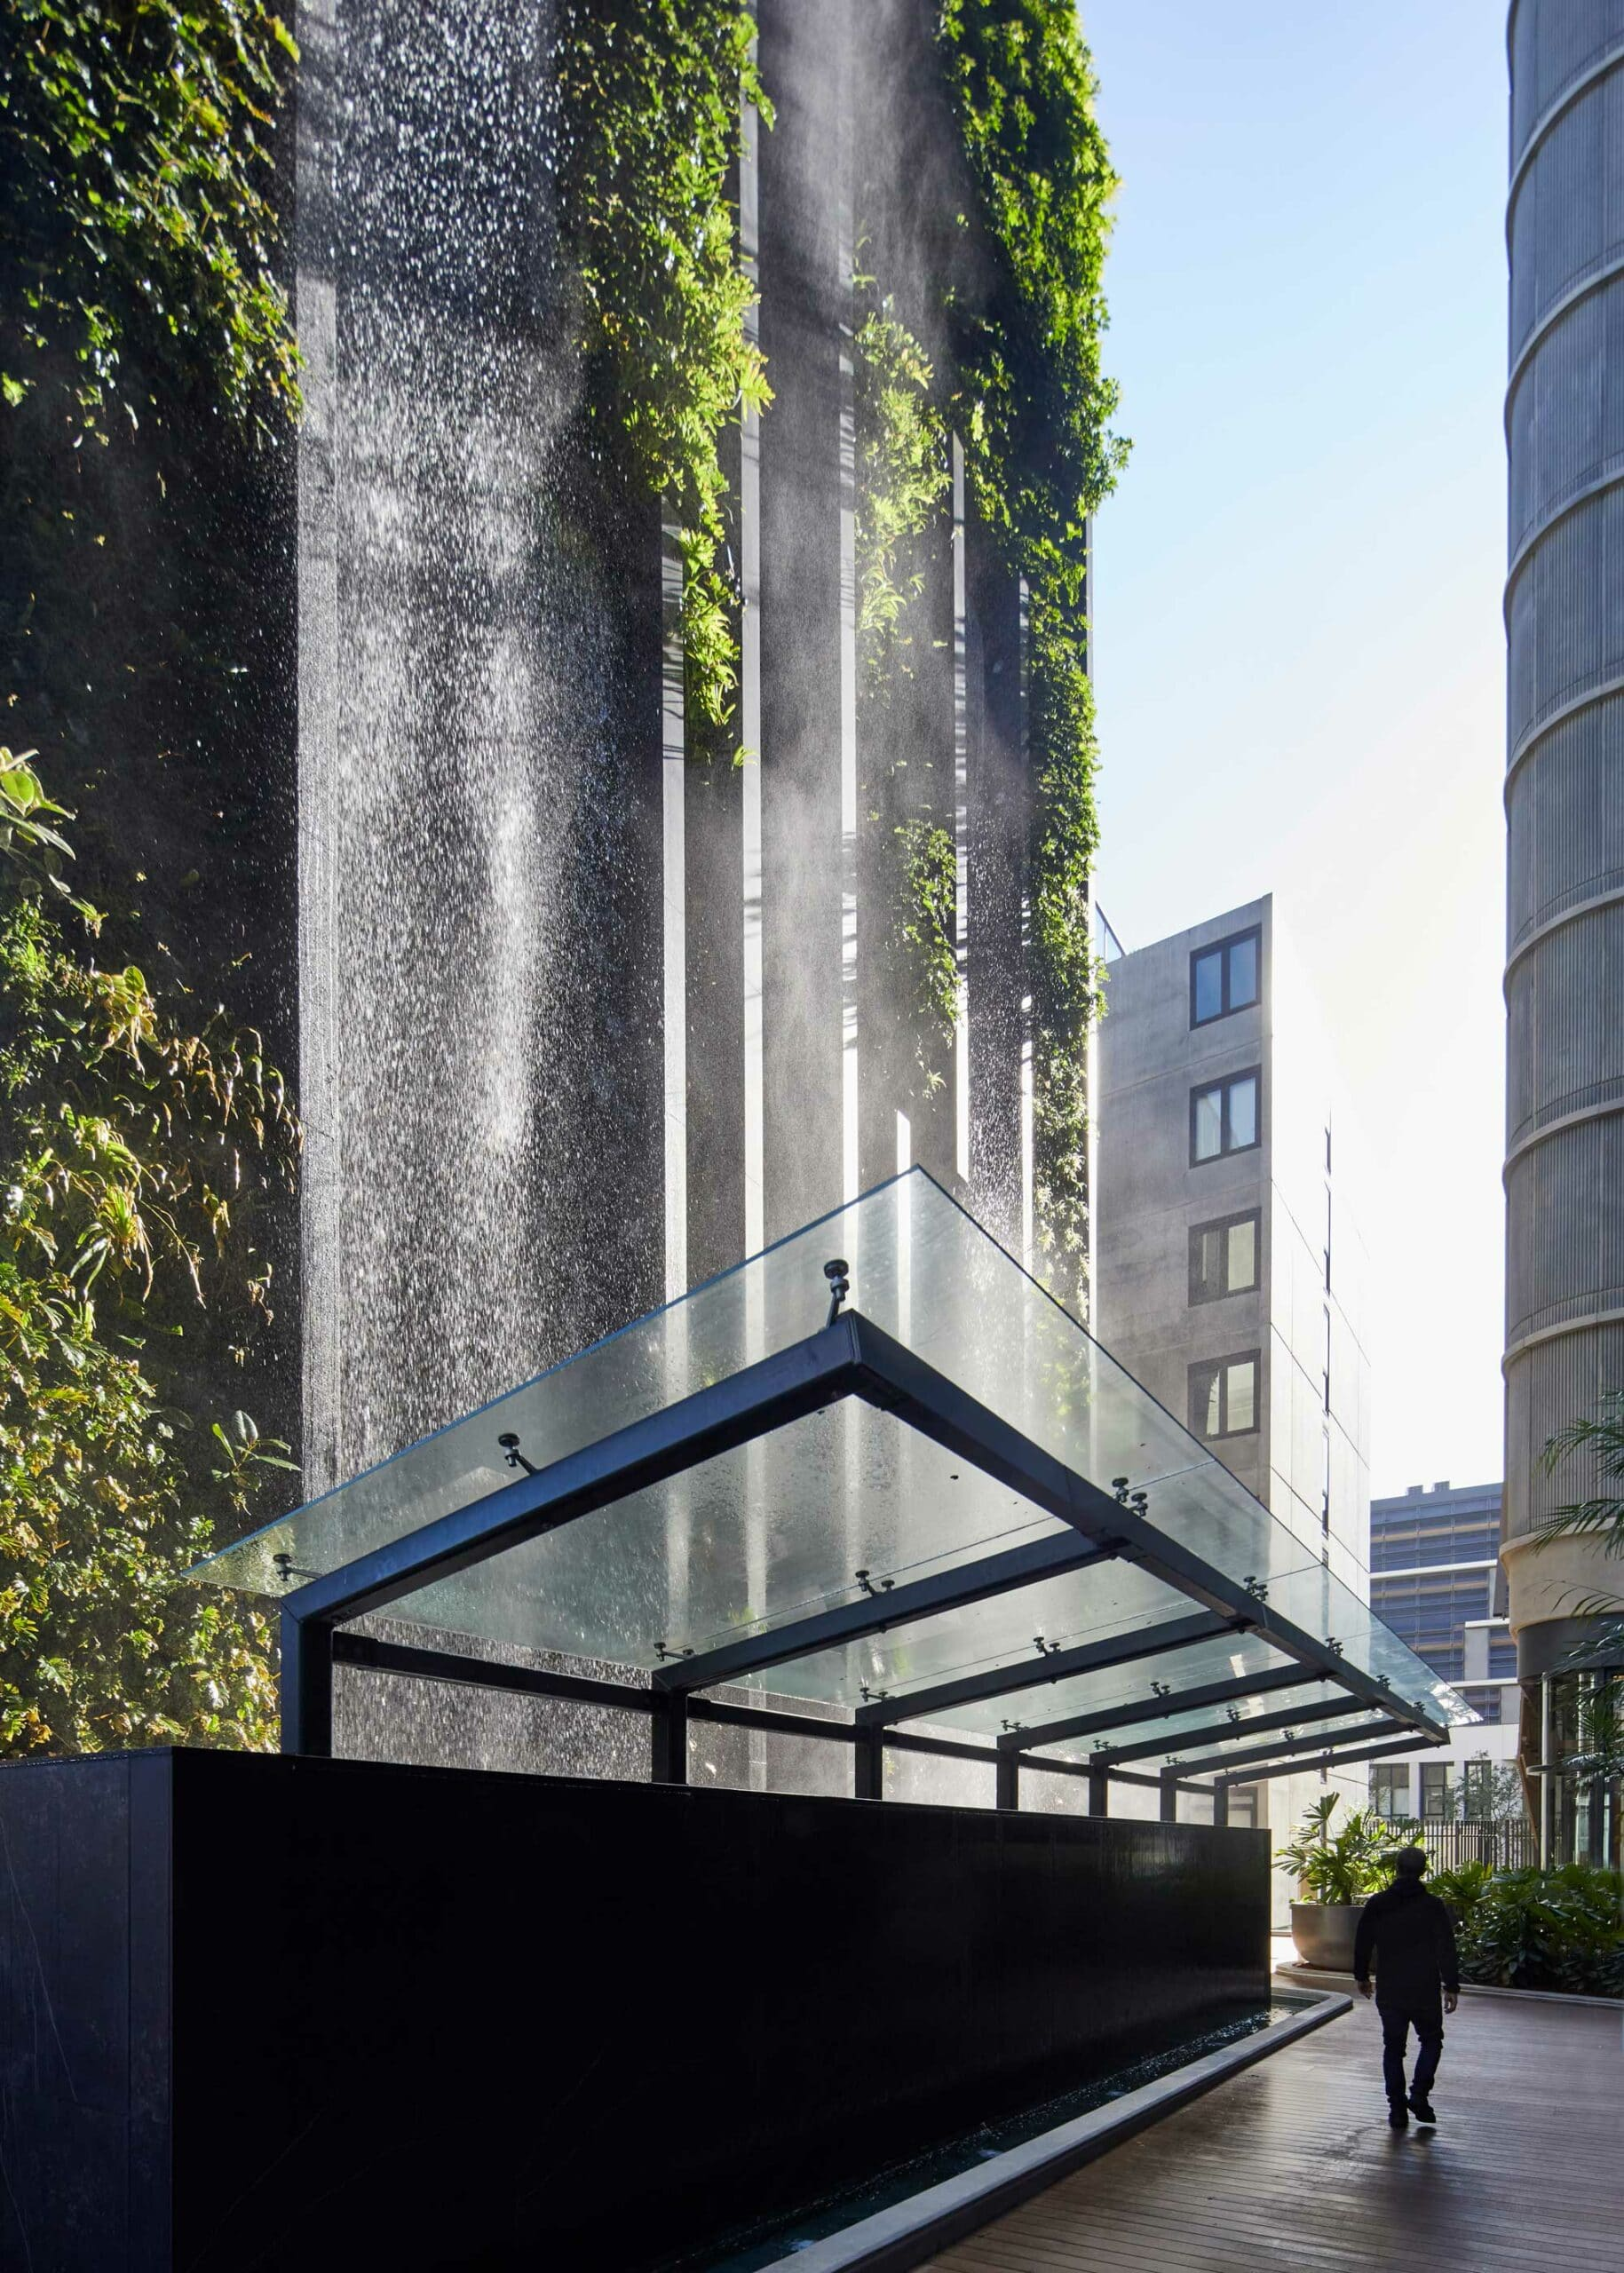 Urban waterfall  - Waterfall Dekton 1 scaled 352